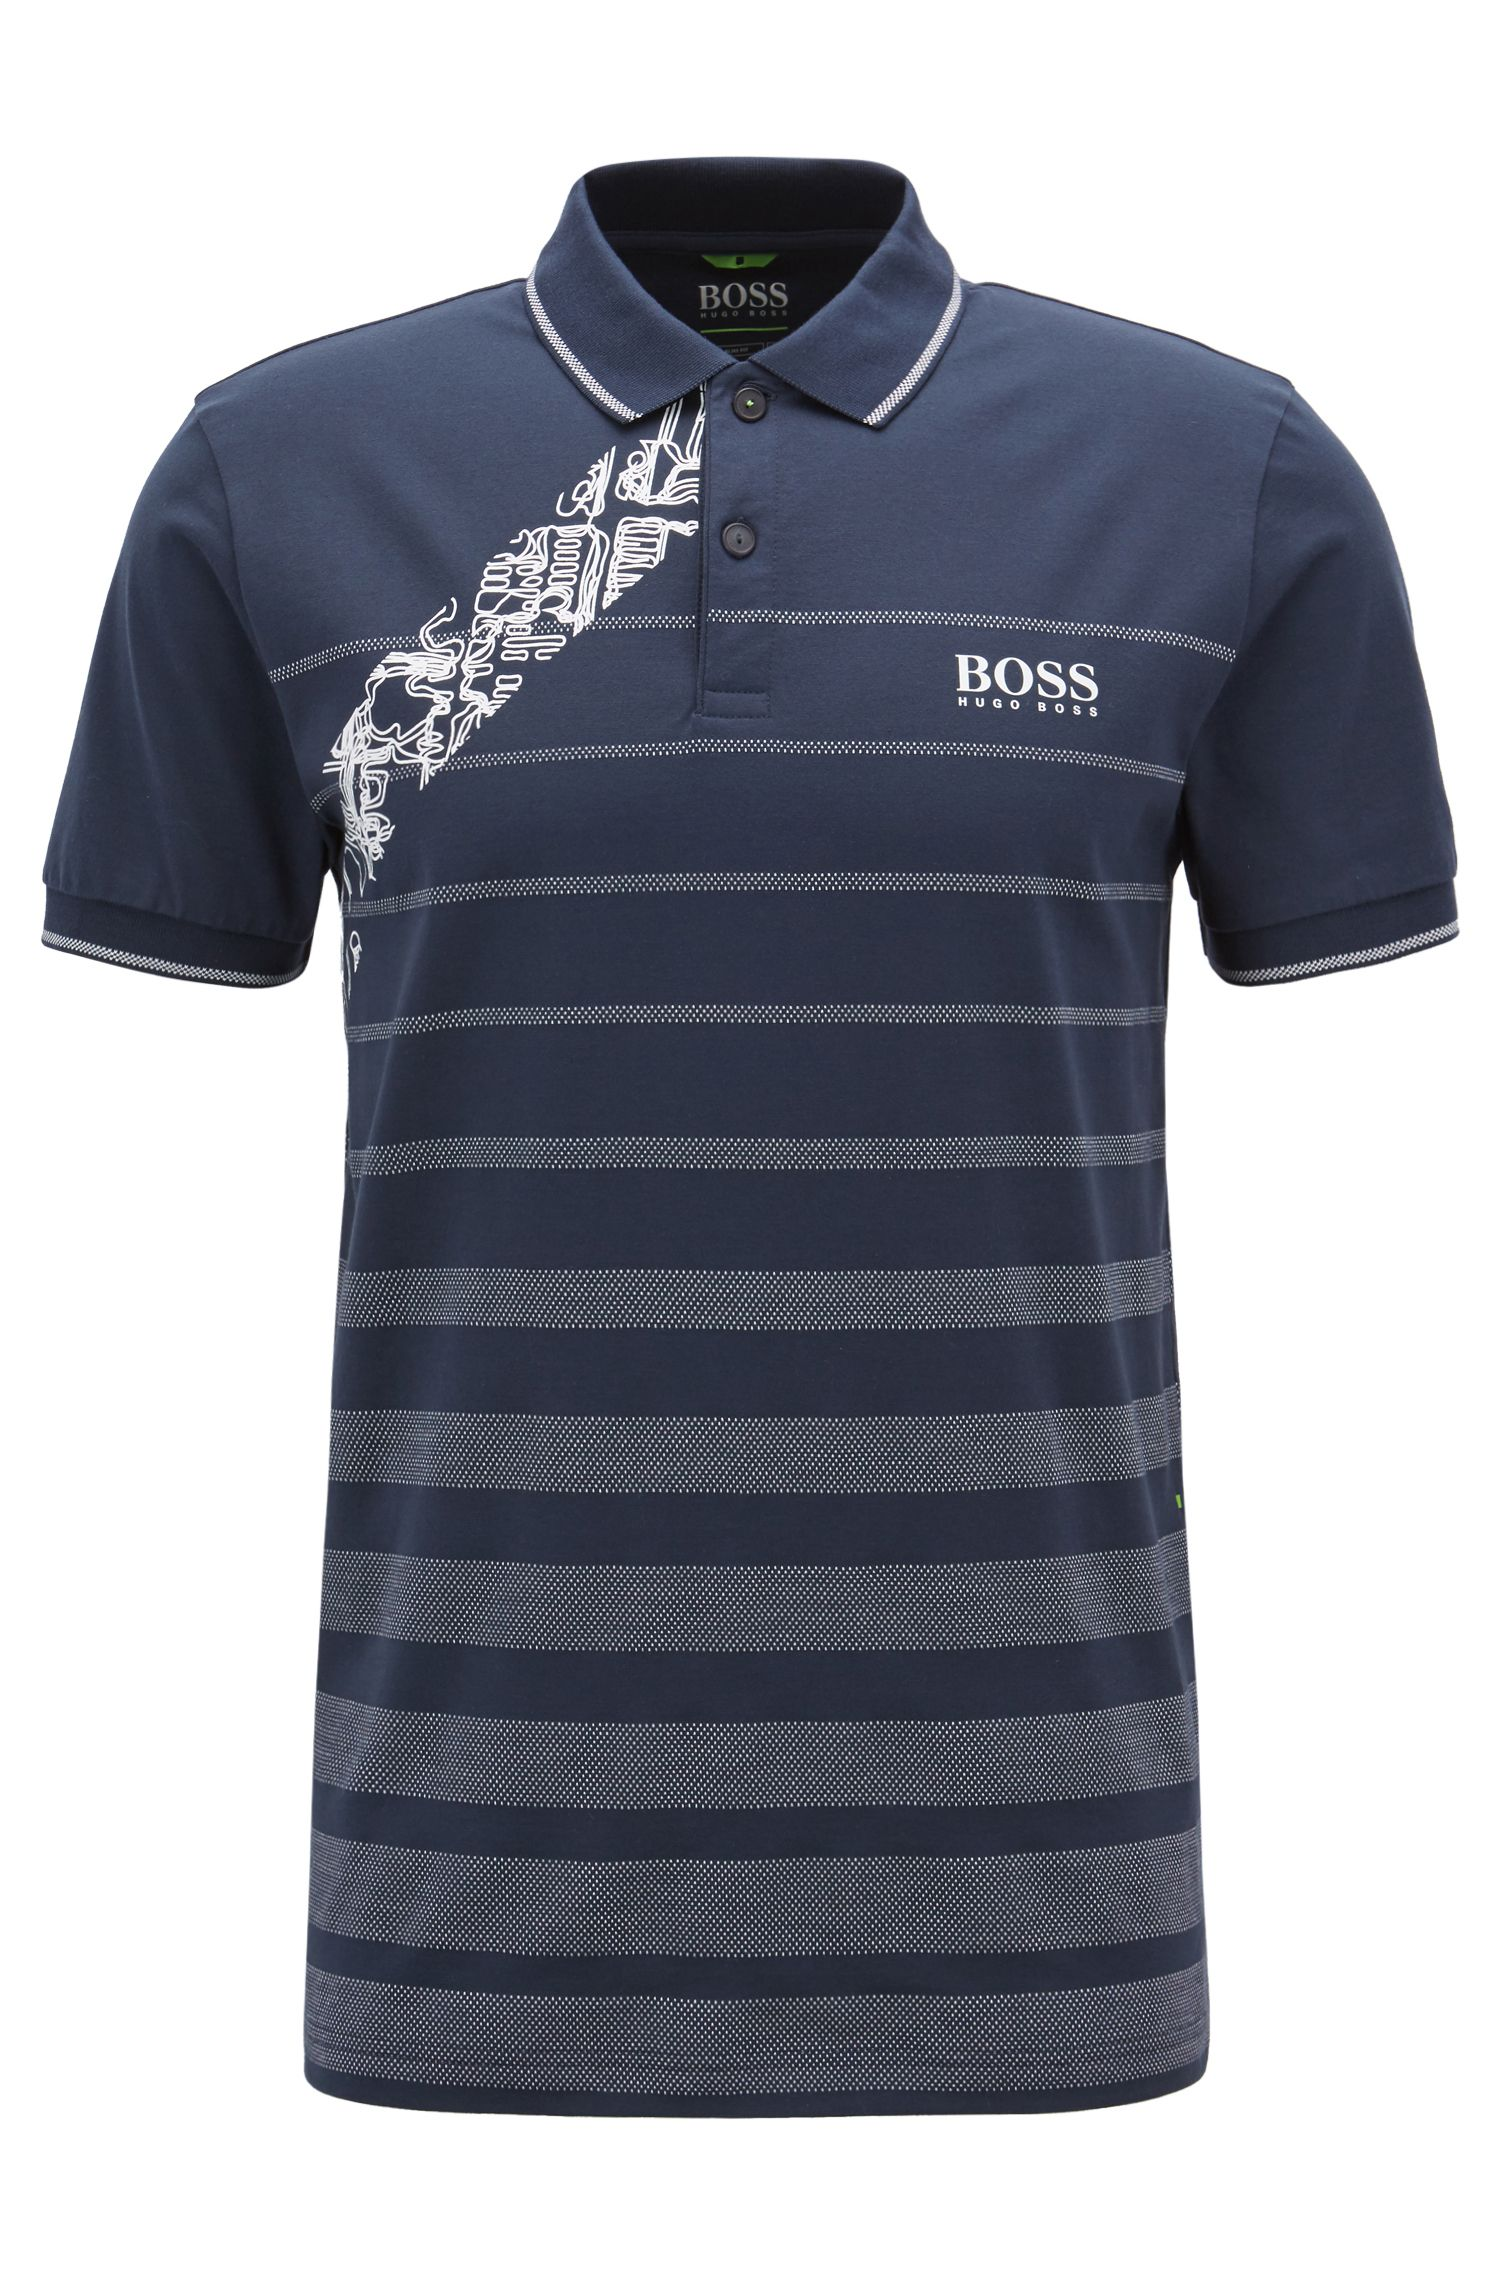 Cotton jacquard polo shirt with moisture management